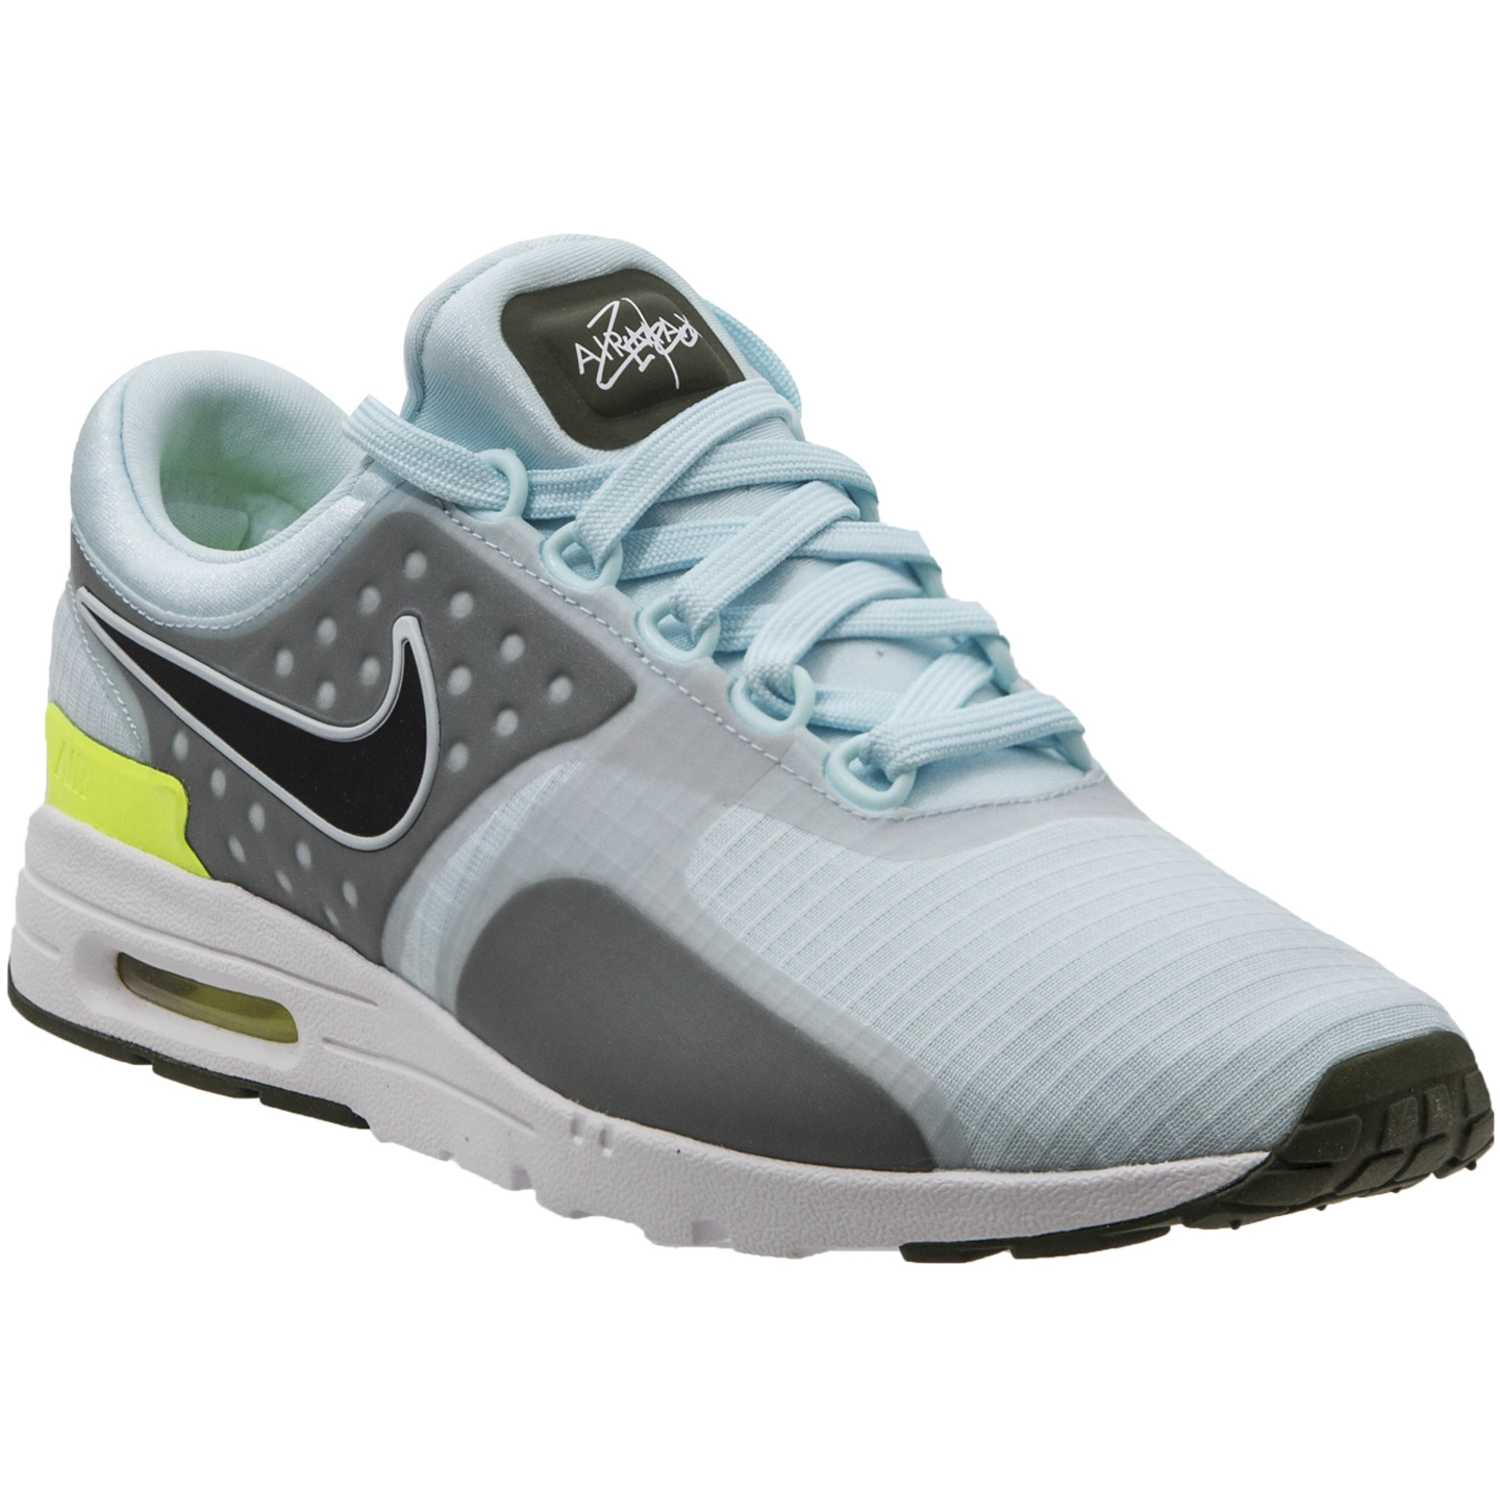 newest 39ef5 c6298 Casual de Mujer Nike Celeste / gris wmns air max zero si ...